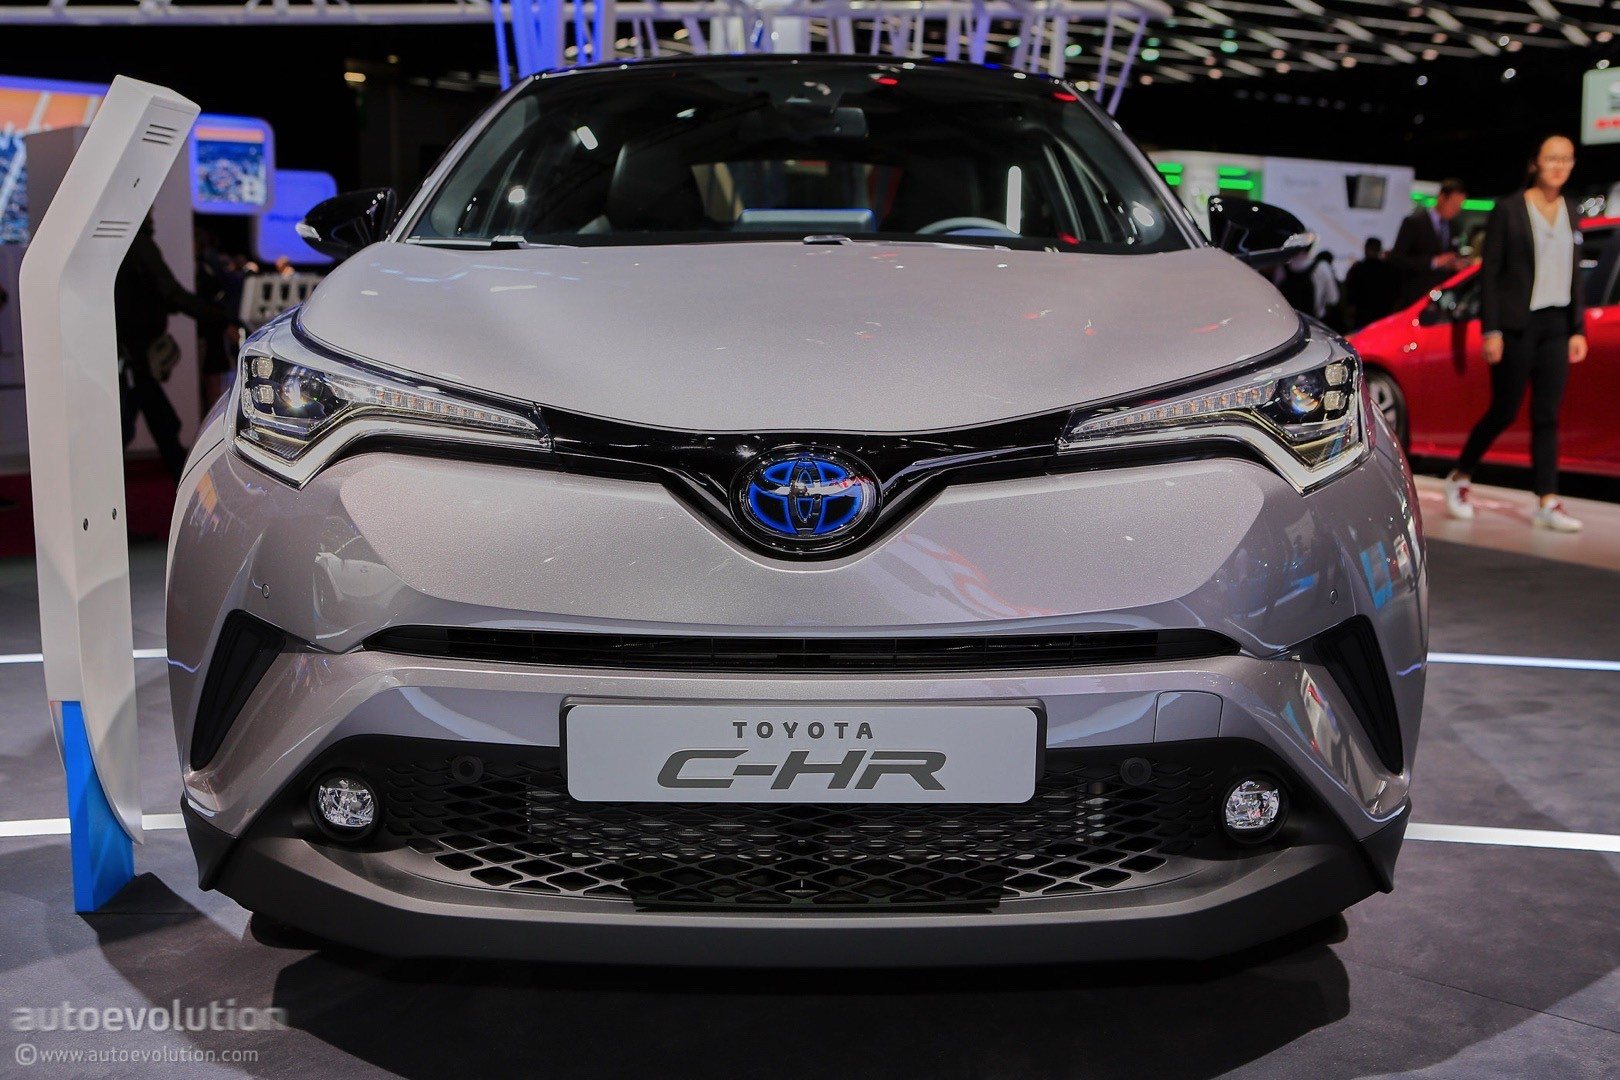 toyota crossover news extensively kuhl c one hr tuned racing modified by